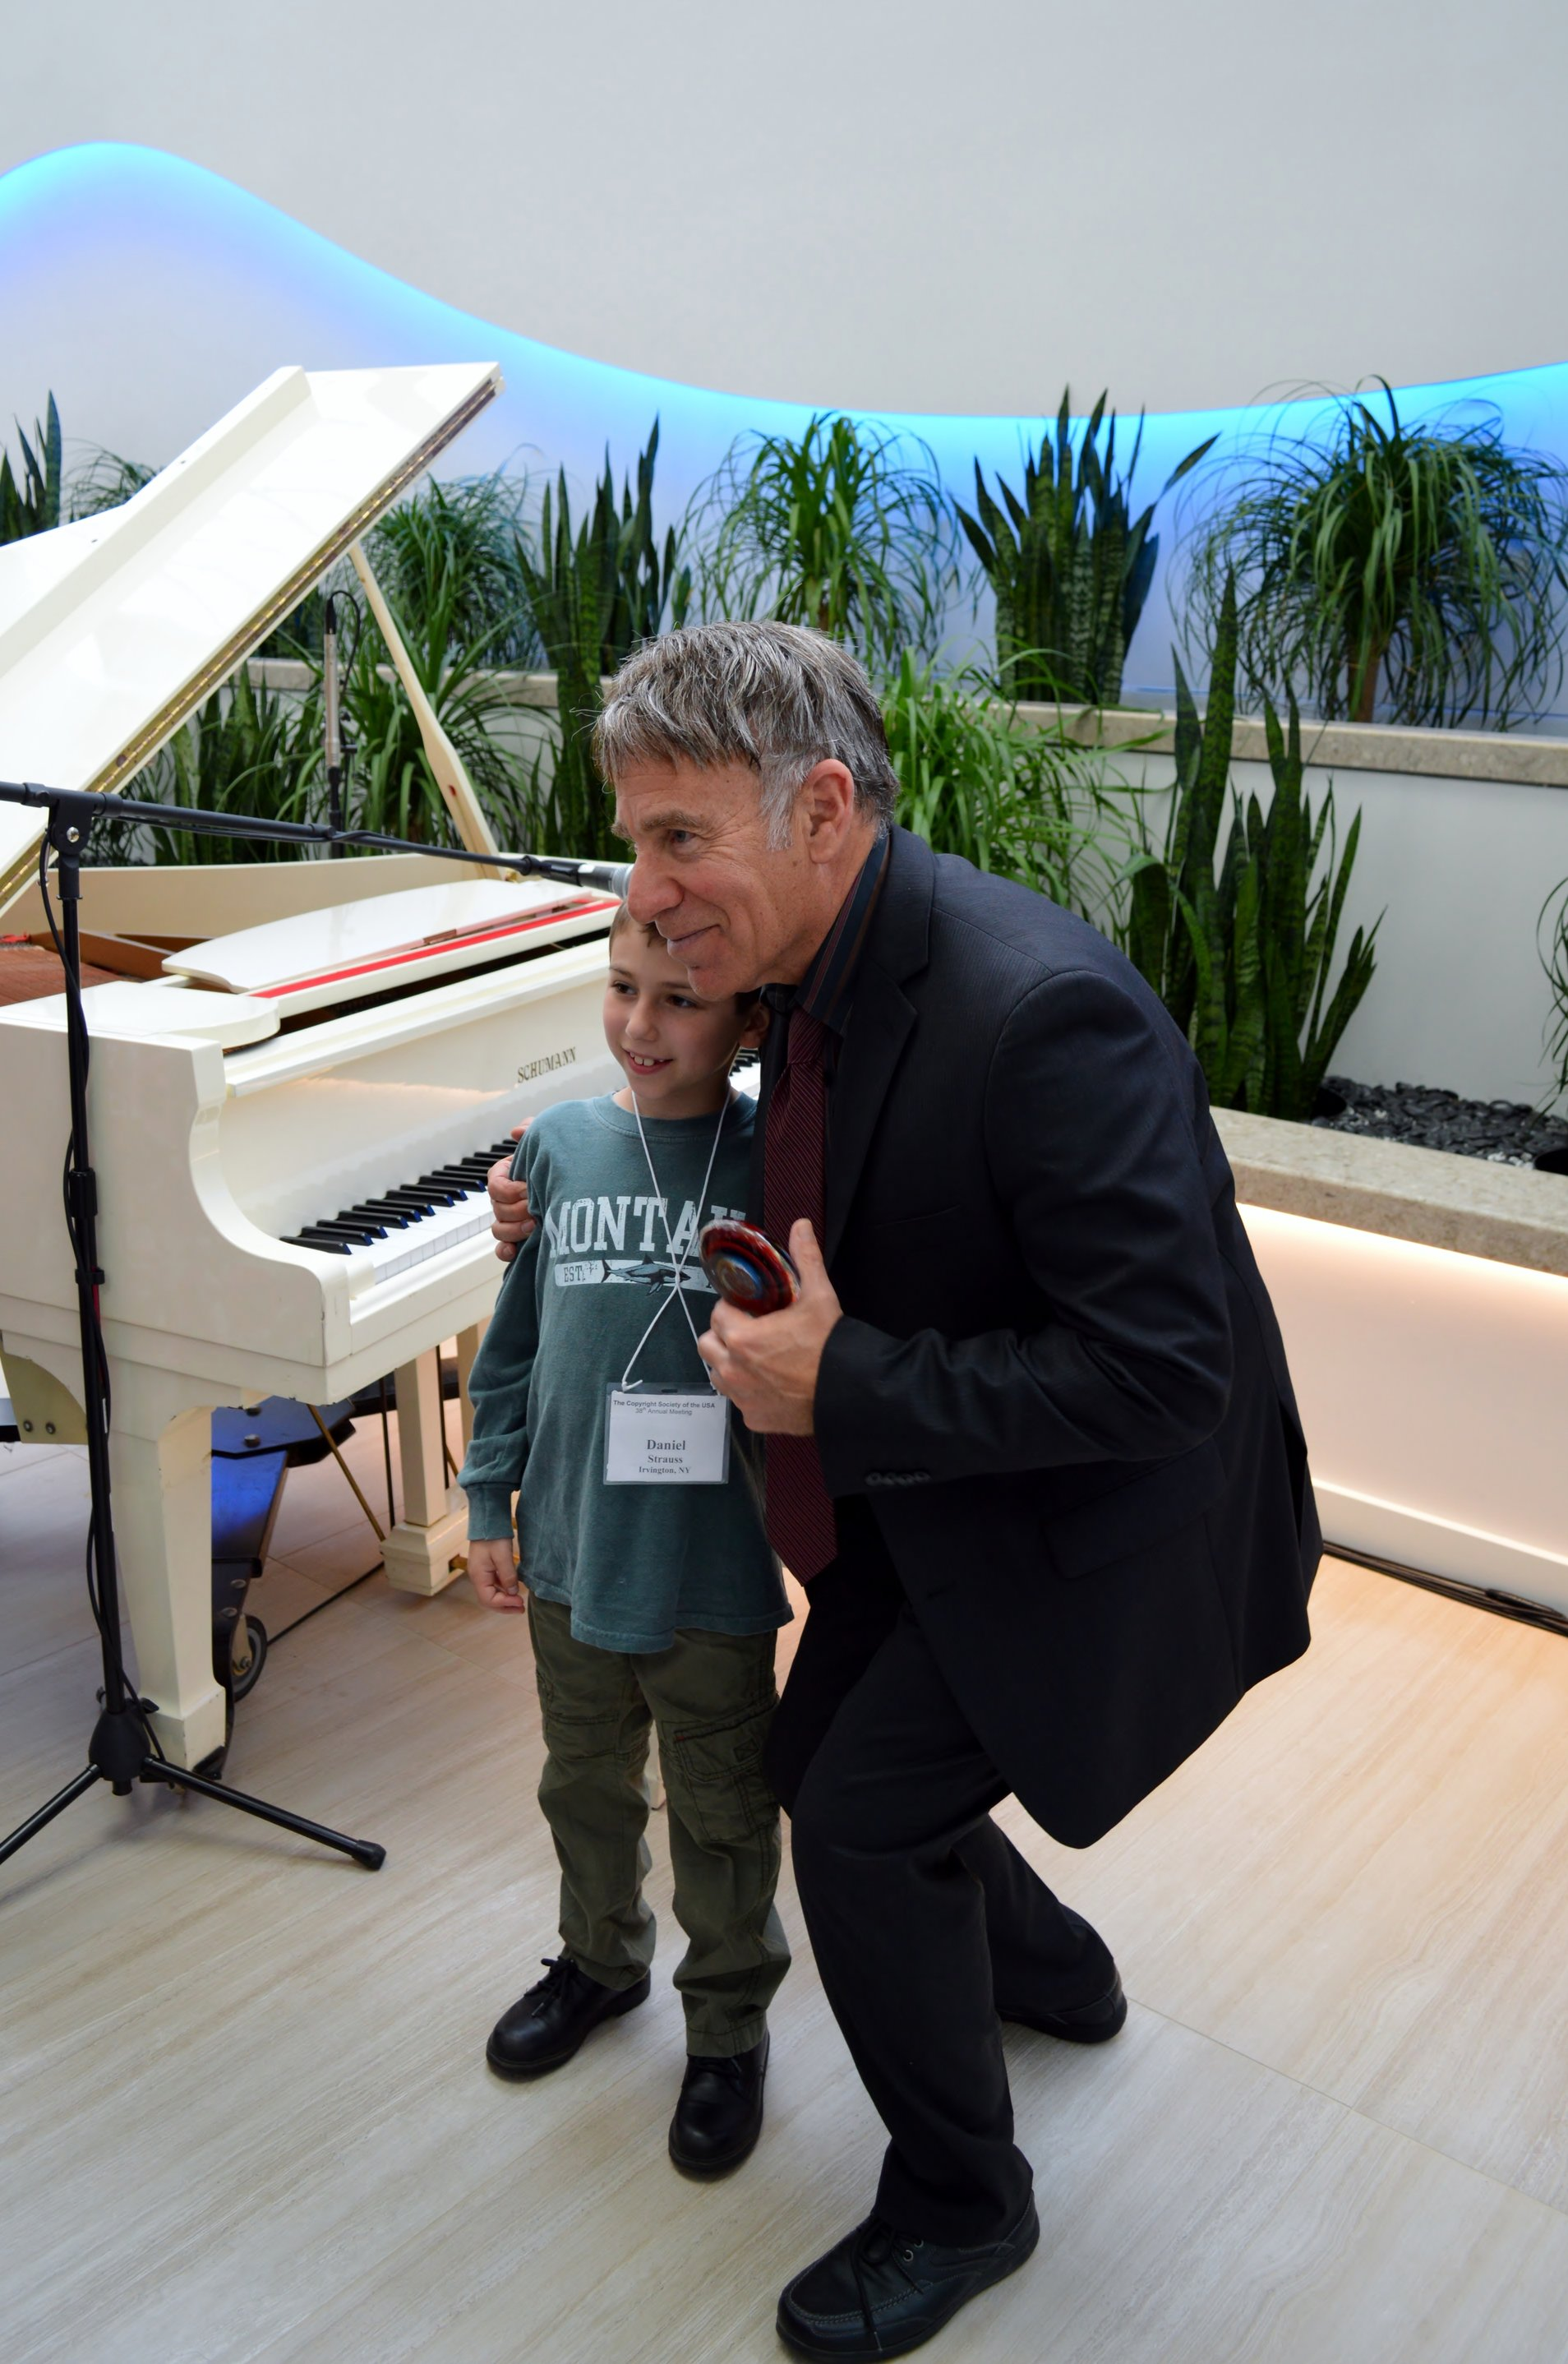 Stephen Schwartz poses for a photo with a young fan